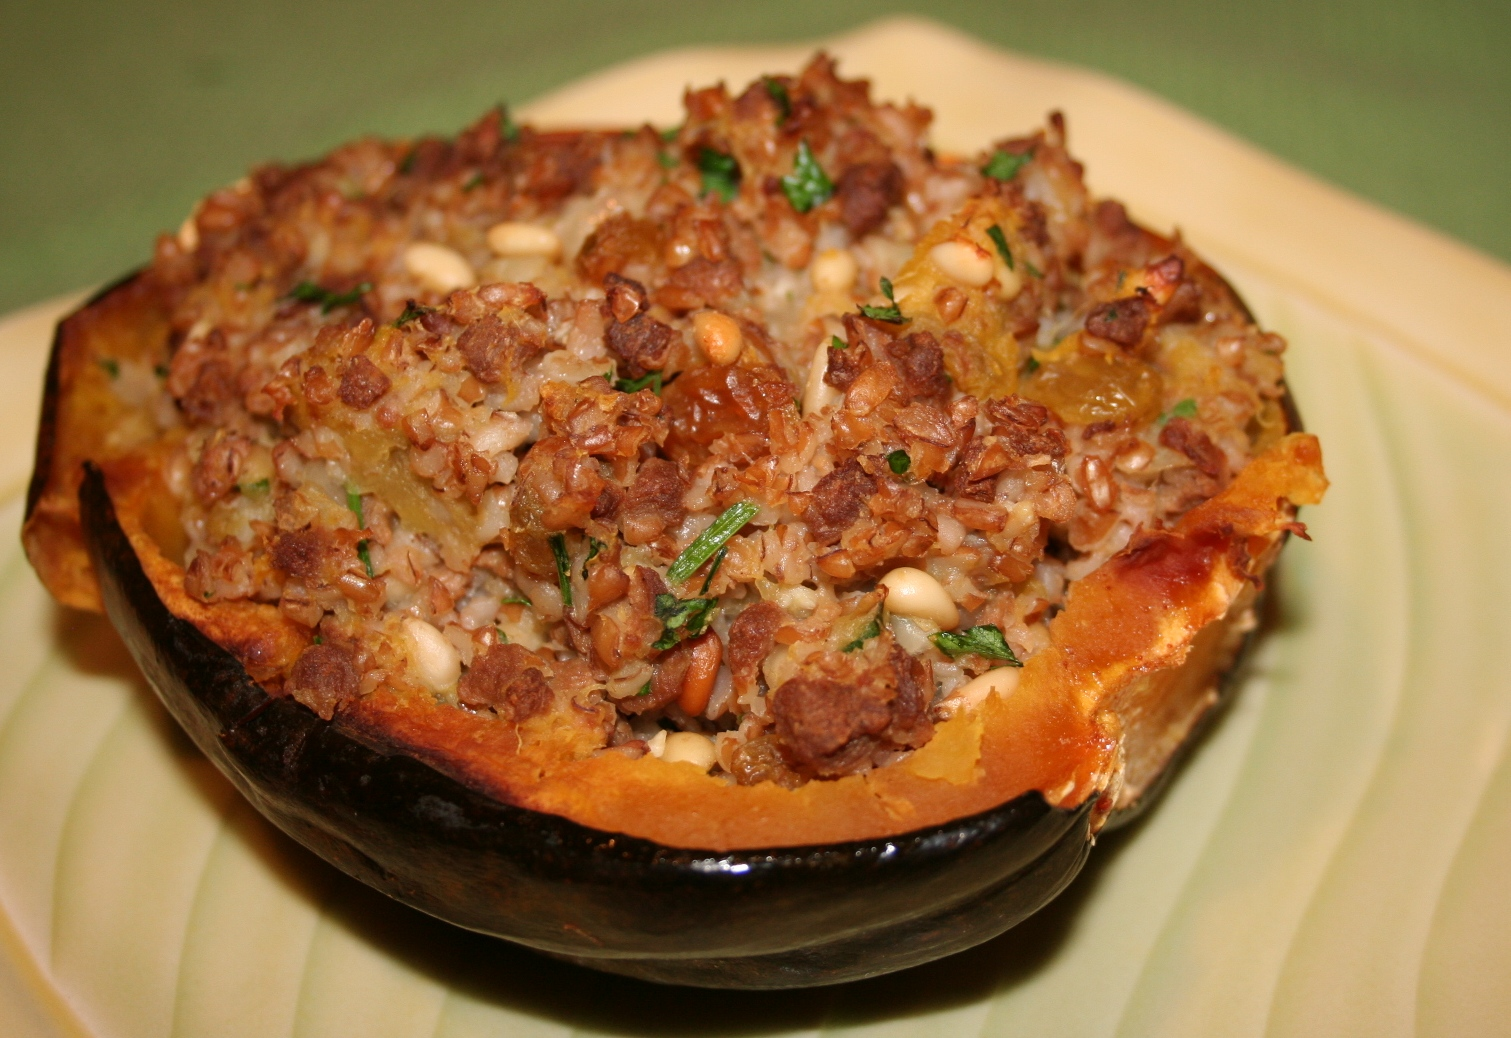 Easy Vegan Meals » Blog Archive » Stuffed Acorn Squash